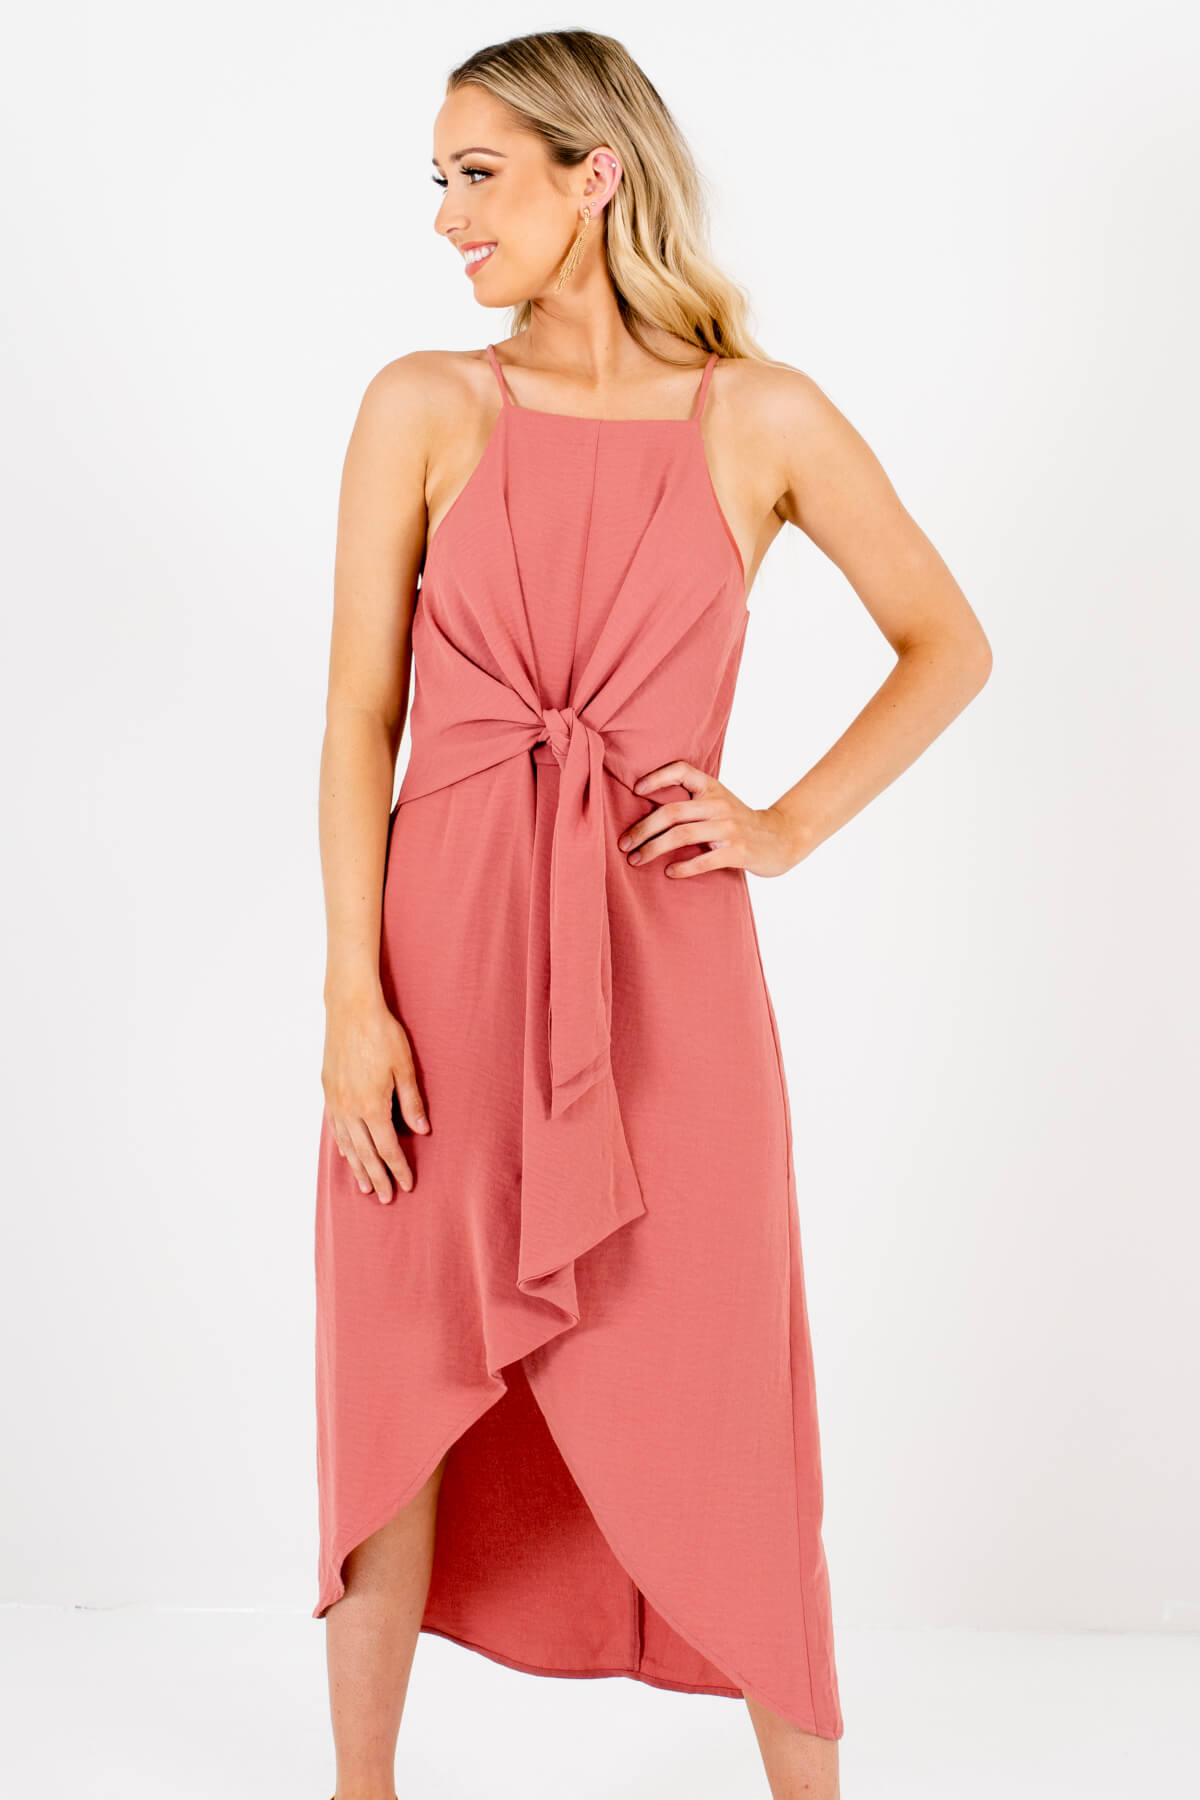 Salmon Pink Tie-Front High-Low Overlay Knee-Length Dresses for Women